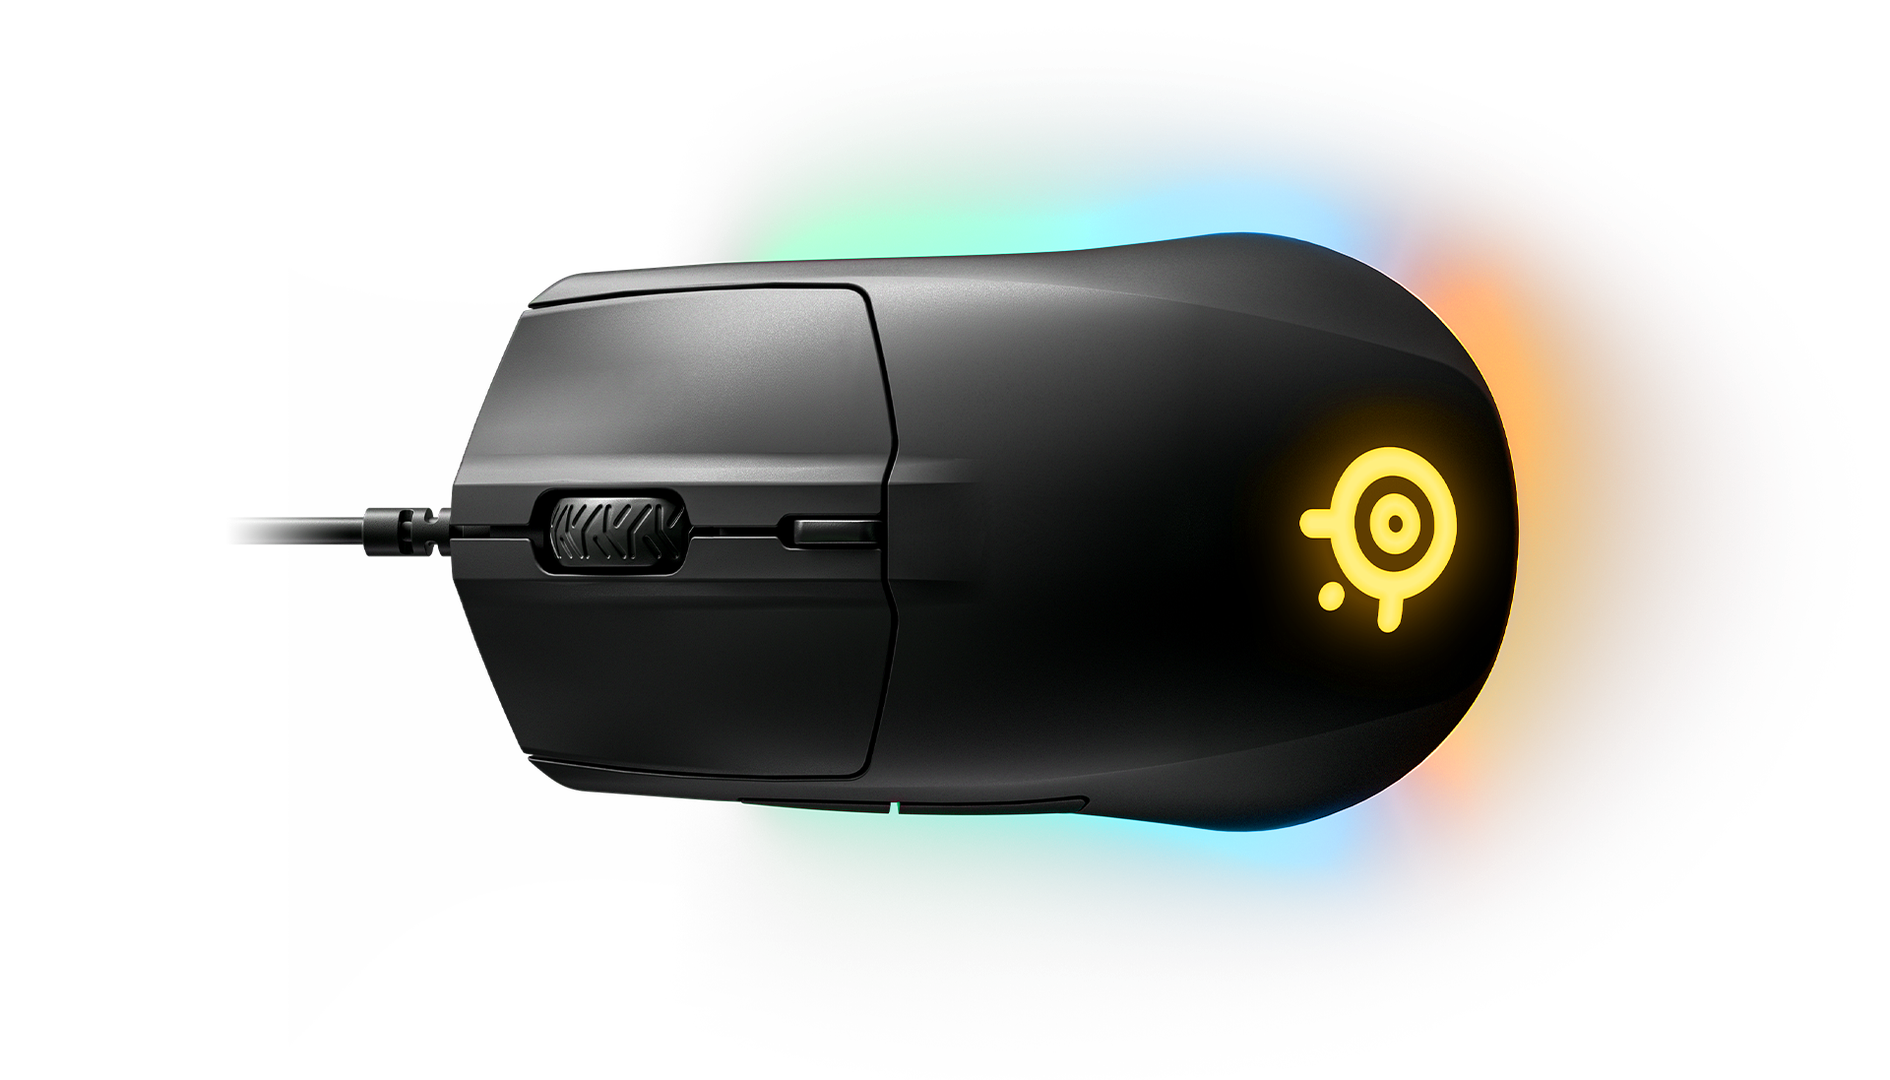 A top-down look at the Rival 3 gaming mouse, a great option for school work and gaming.